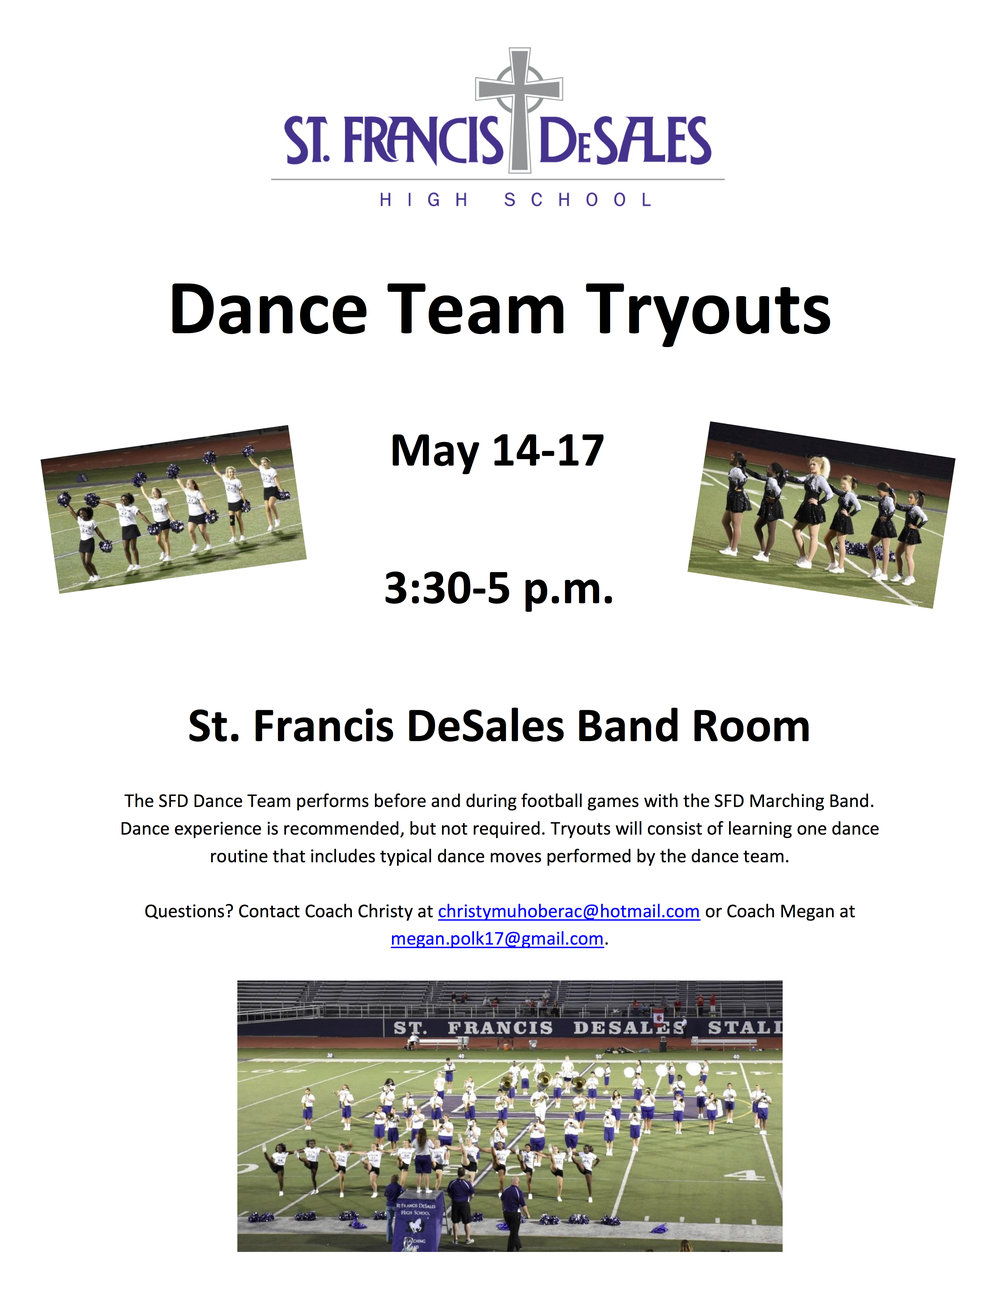 2018 DT Tryouts Flyer.jpg